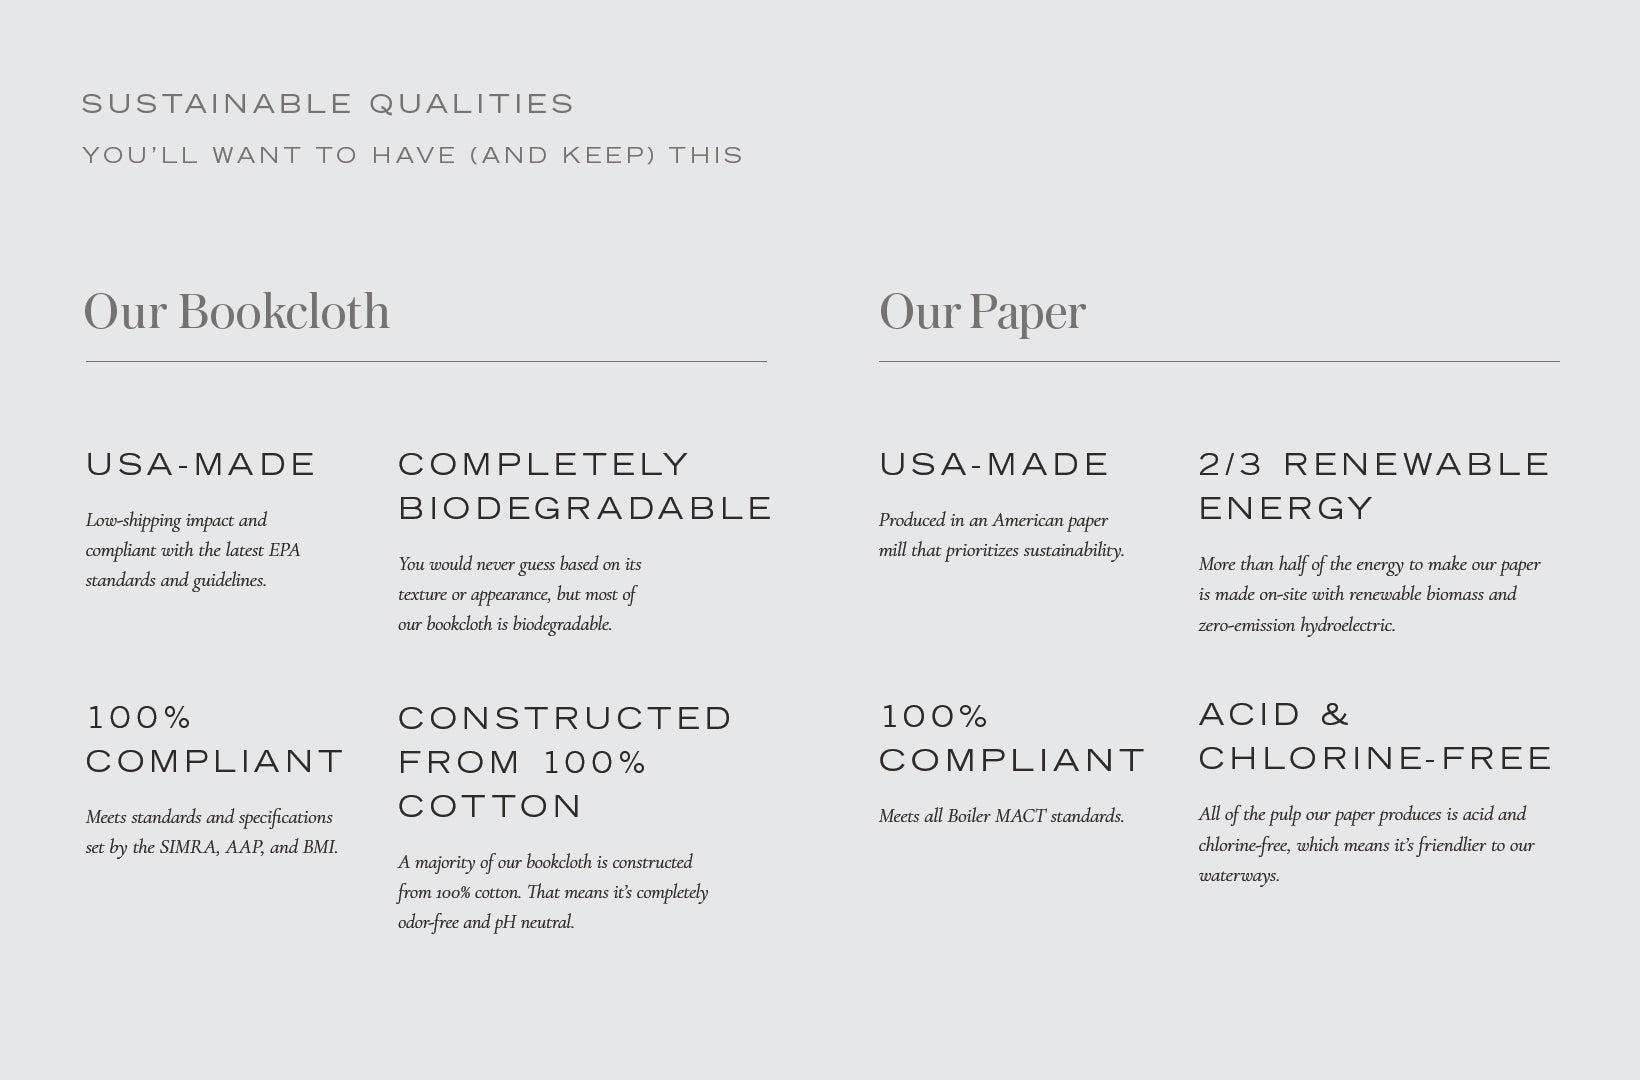 Appointed sustainable qualities chart outlines how our green commitment adds up